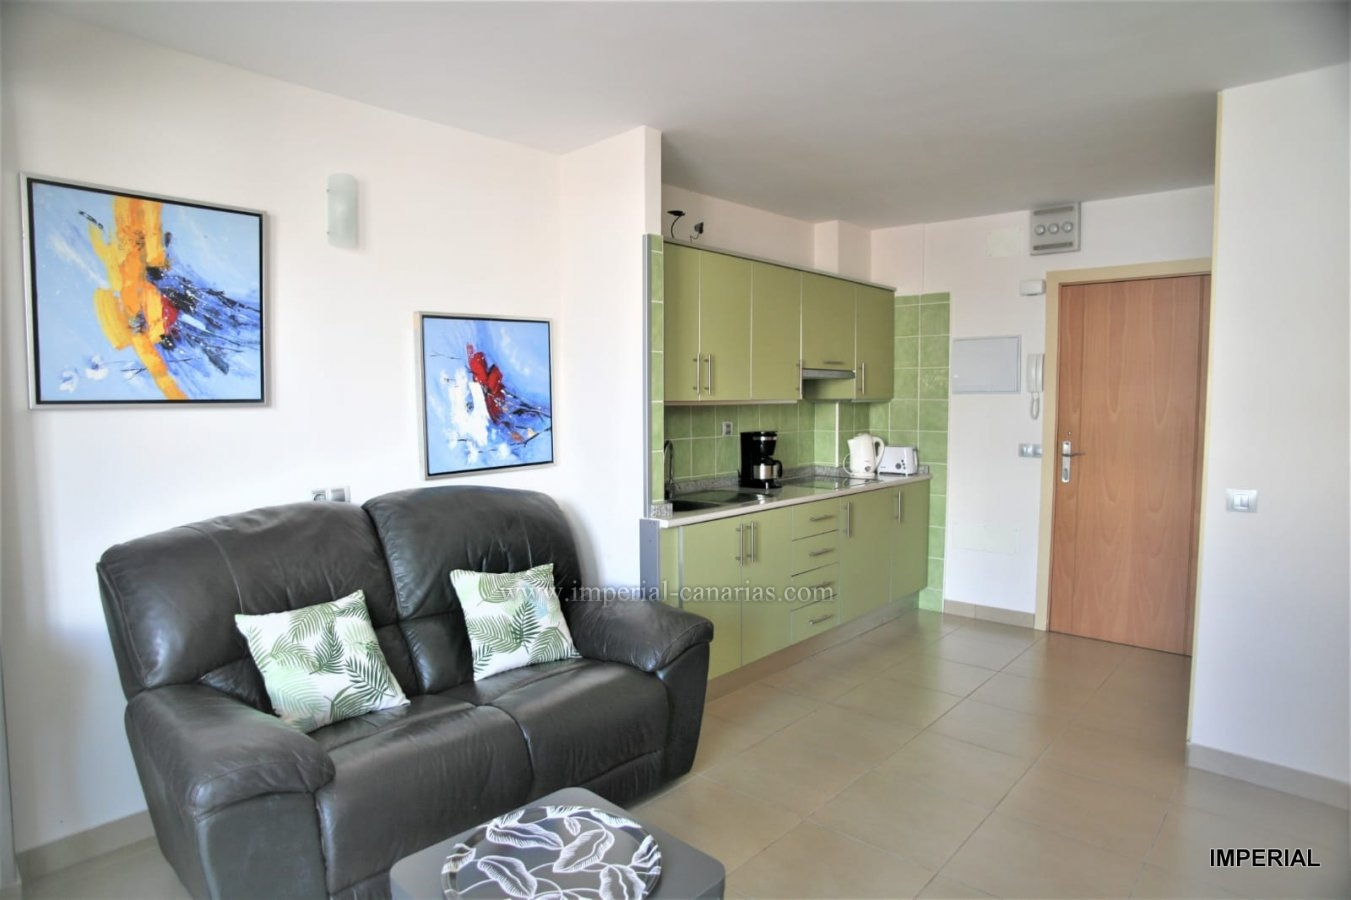 Fully furnished flat in central and pedestrian area of Puerto de la Cruz.